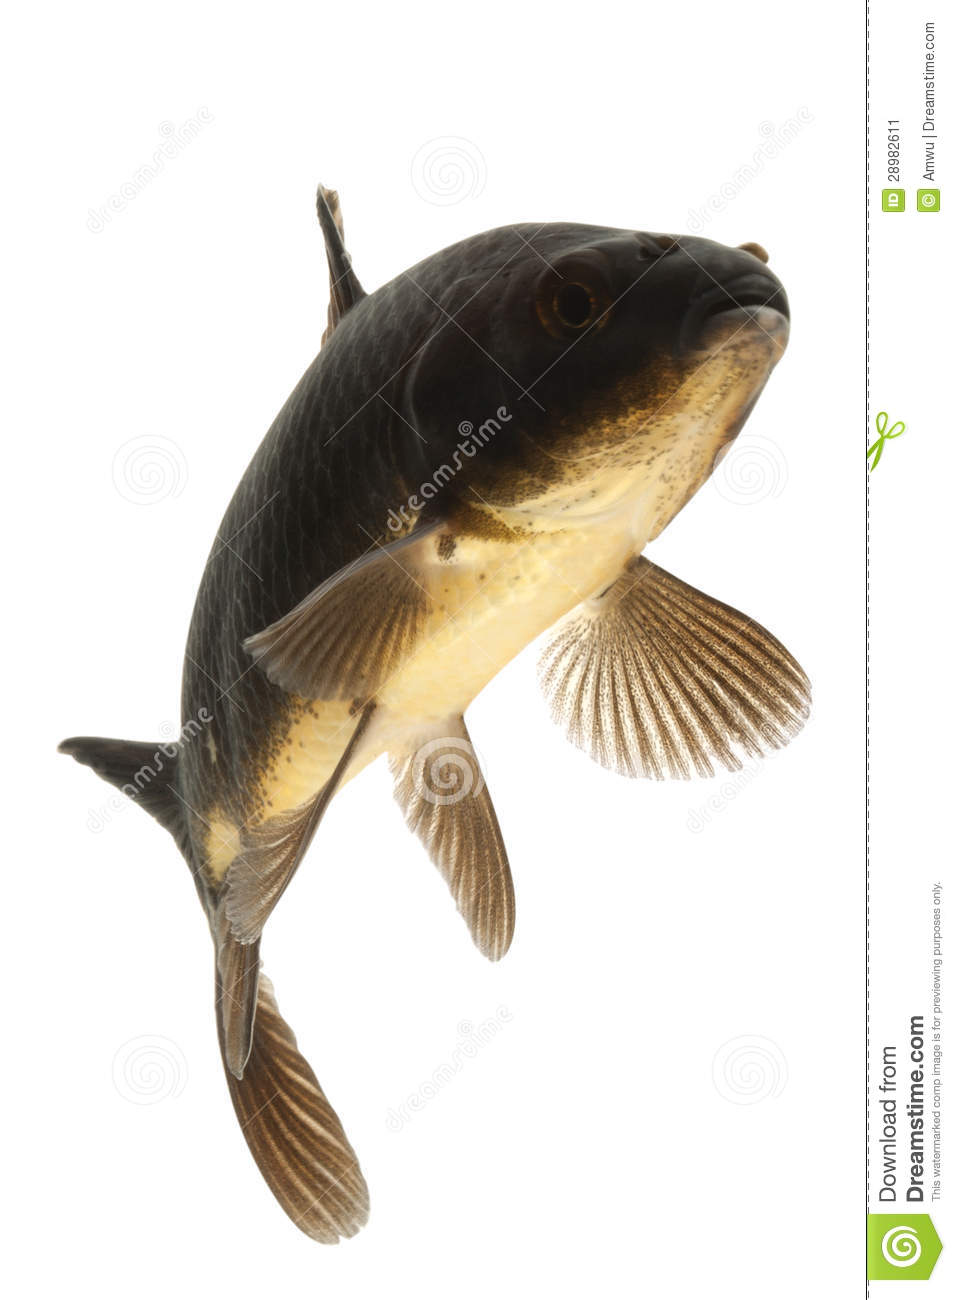 Black koi fish stock image image 28982611 for Black white koi